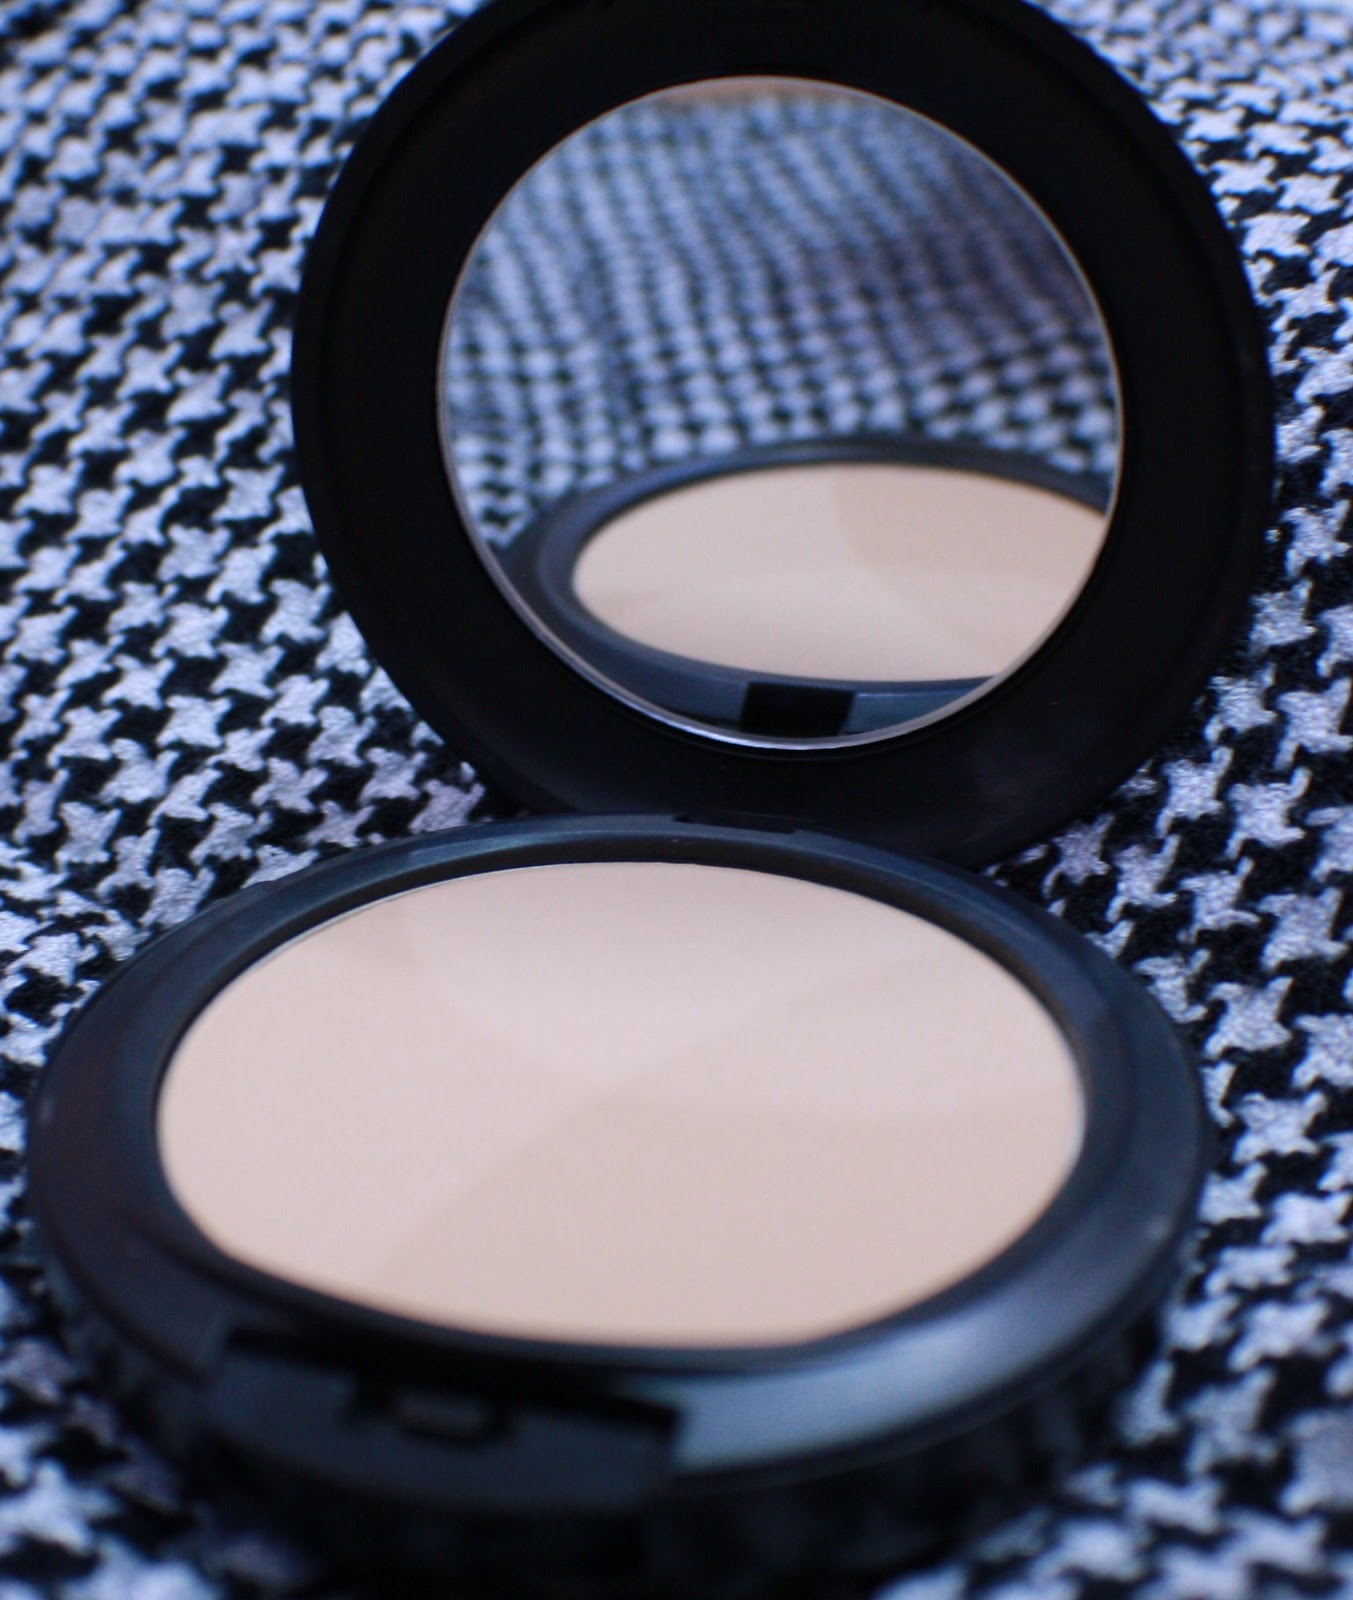 My icy world of color mac studiofix powder review foundation and powder gives skin a smooth flawless all matte full coverage finish long wearing lasts for up to eight hours a real all in one nvjuhfo Gallery